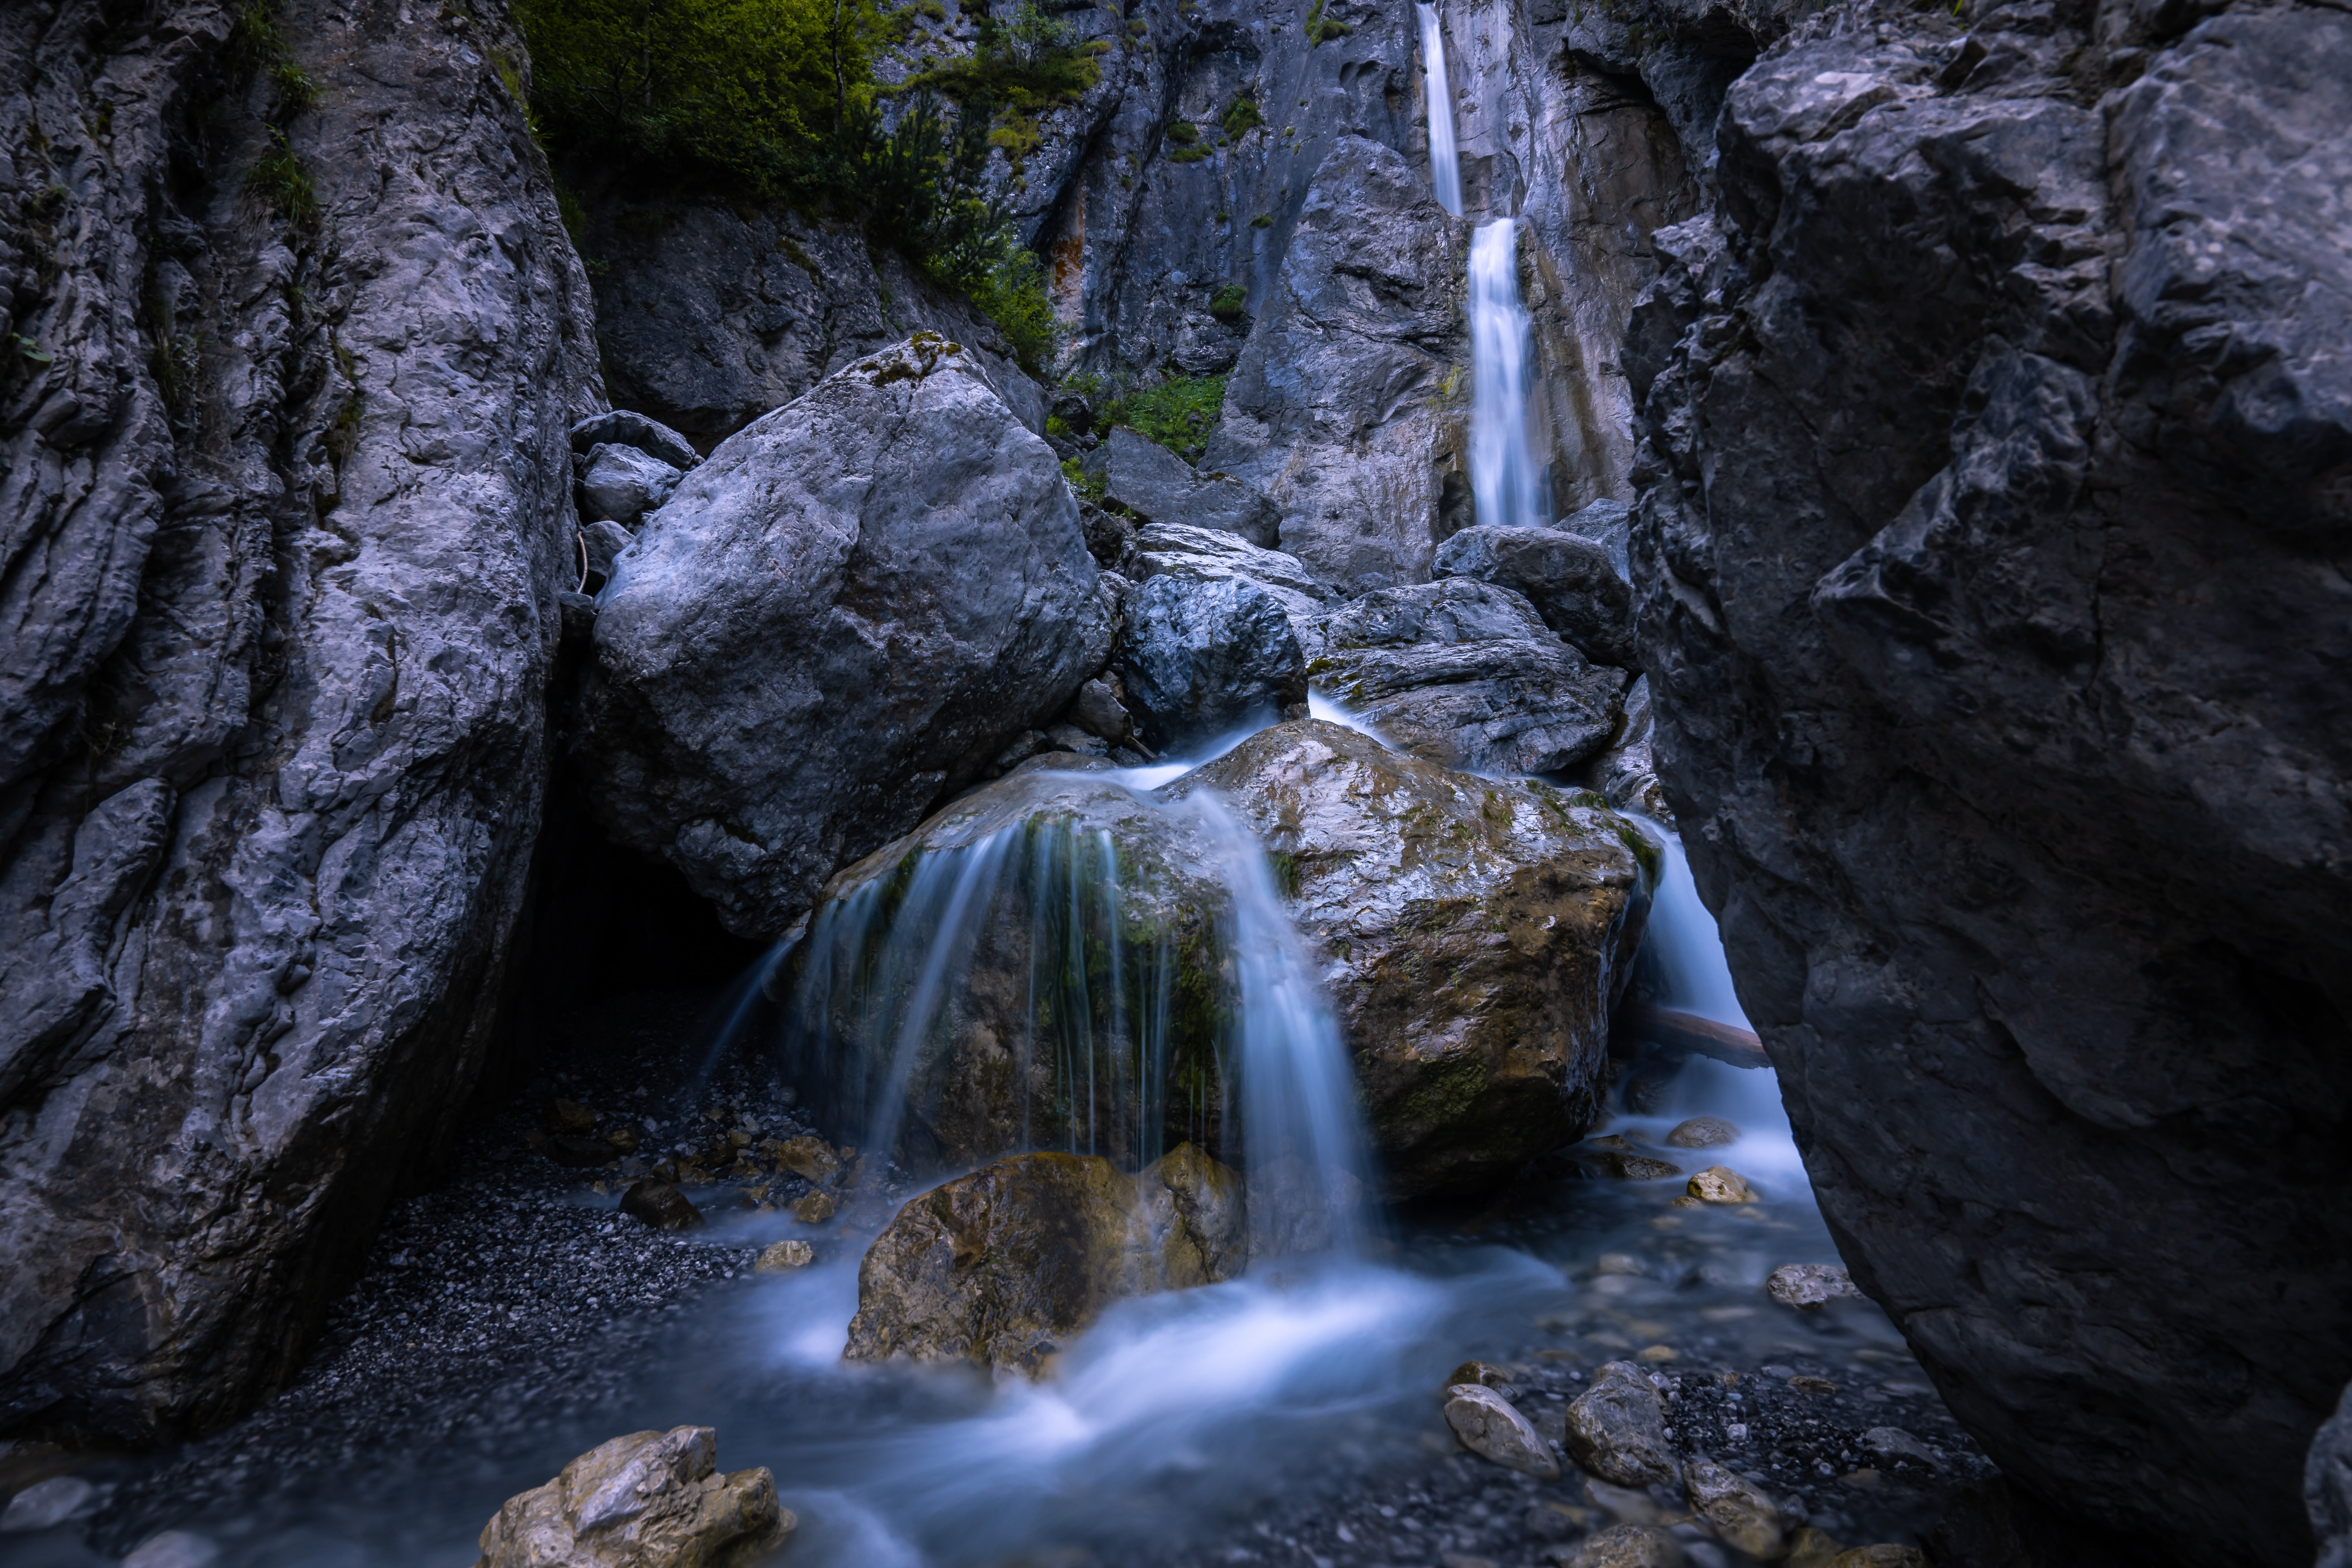 waterfall surrounded by rock formatio n